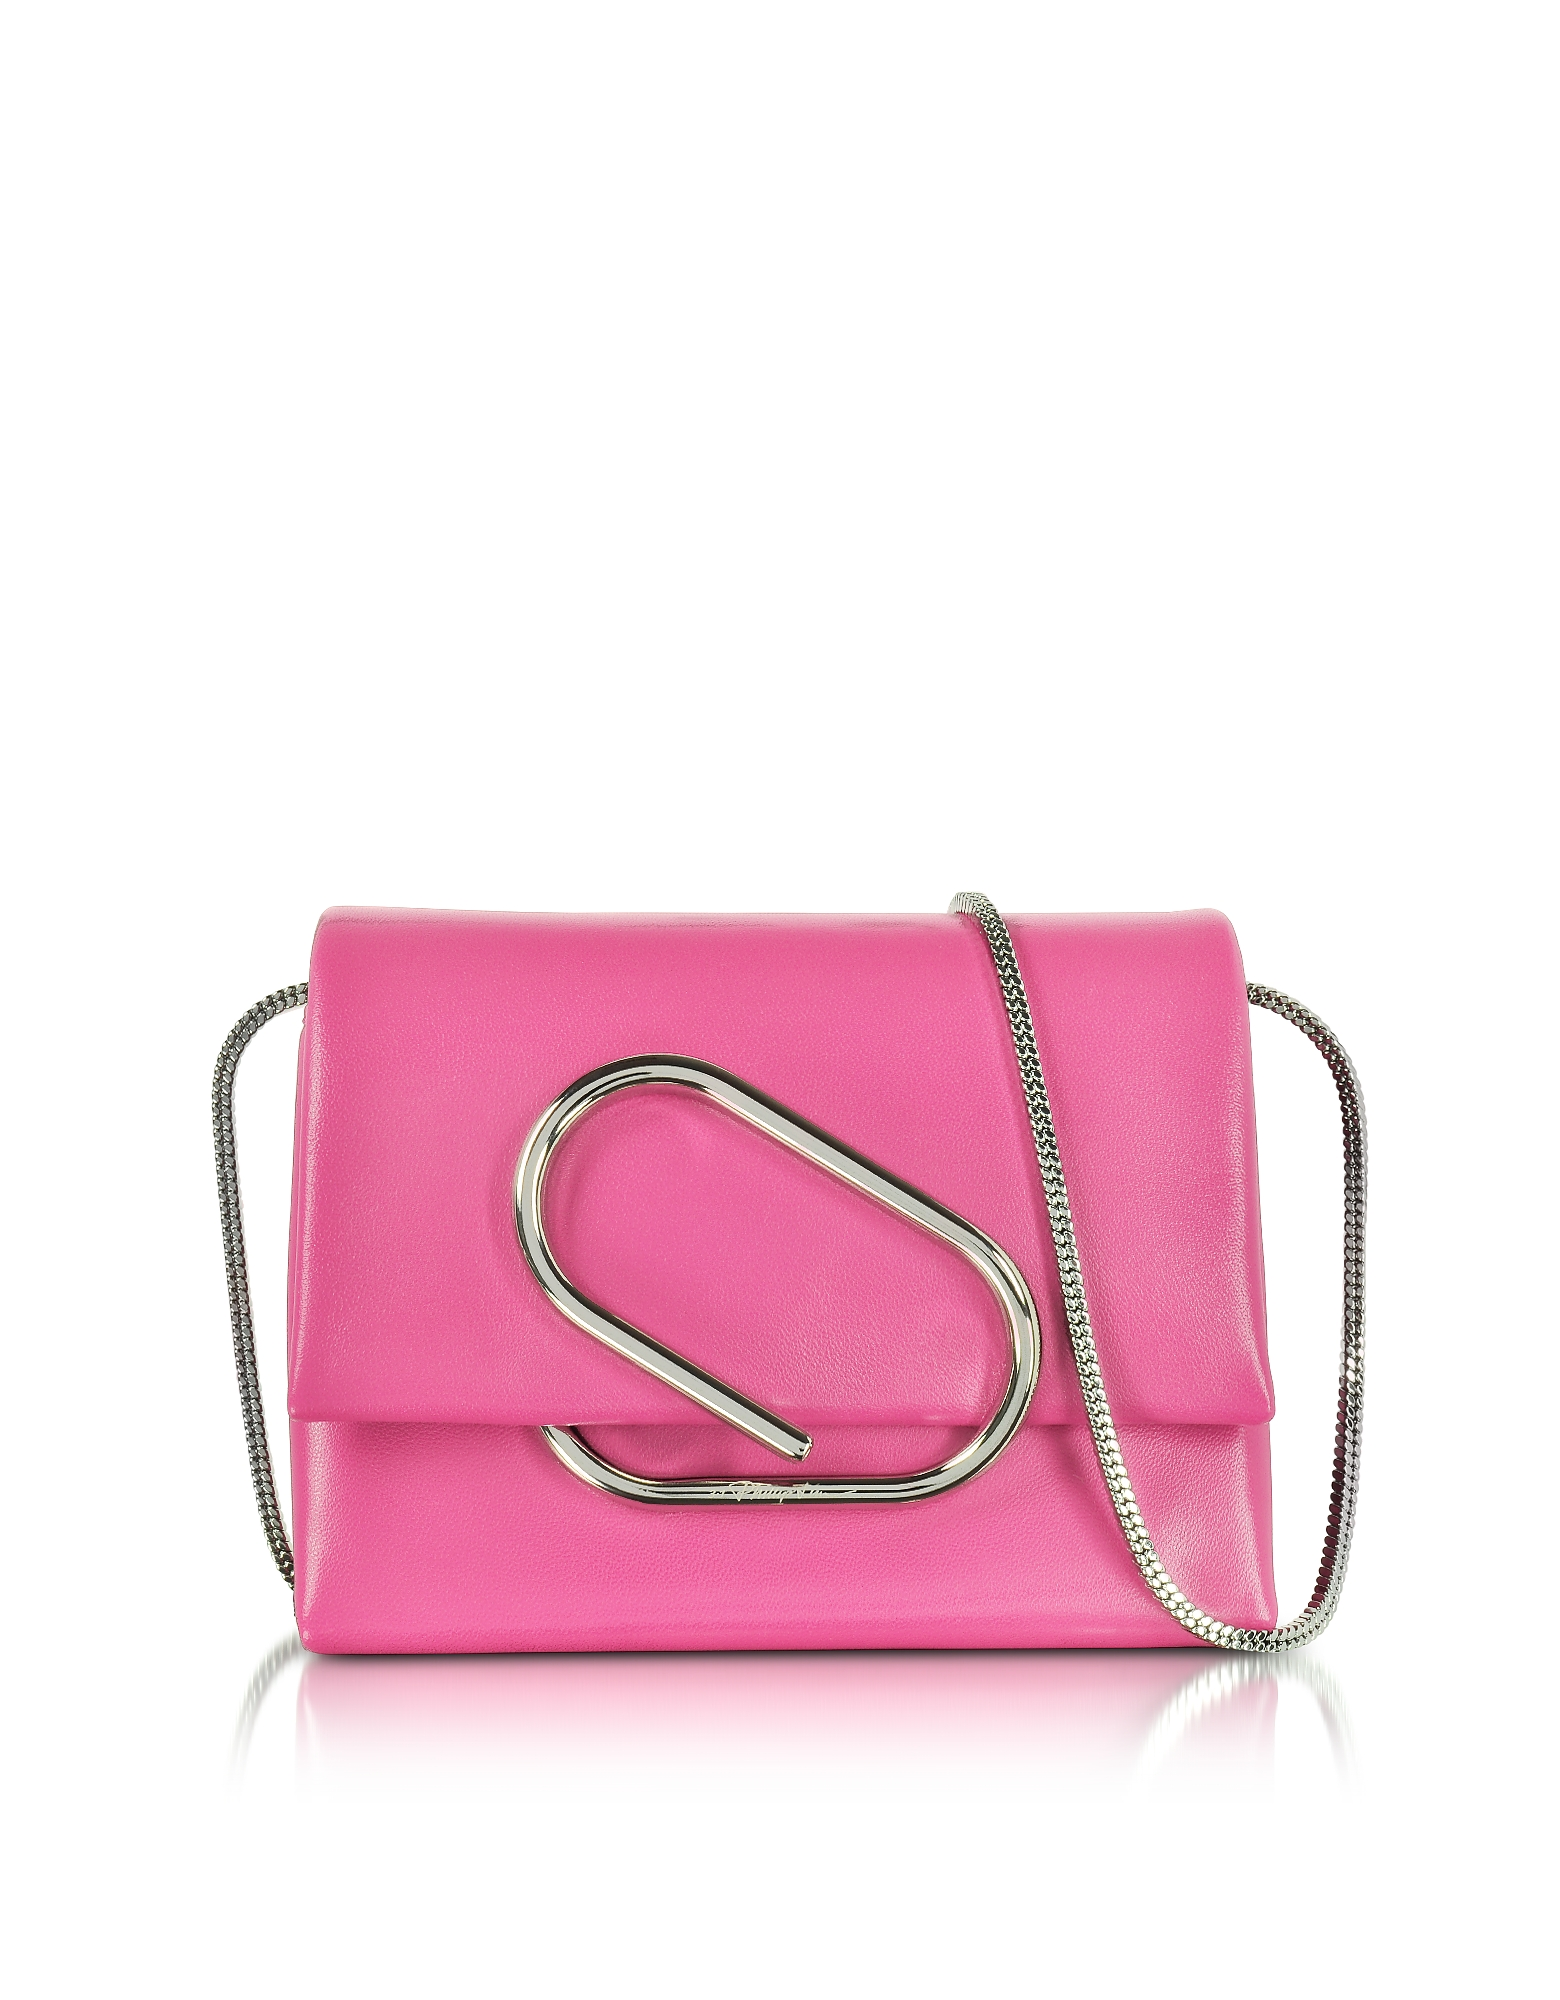 Alix Micro Clutch in Pelle Candy Pink